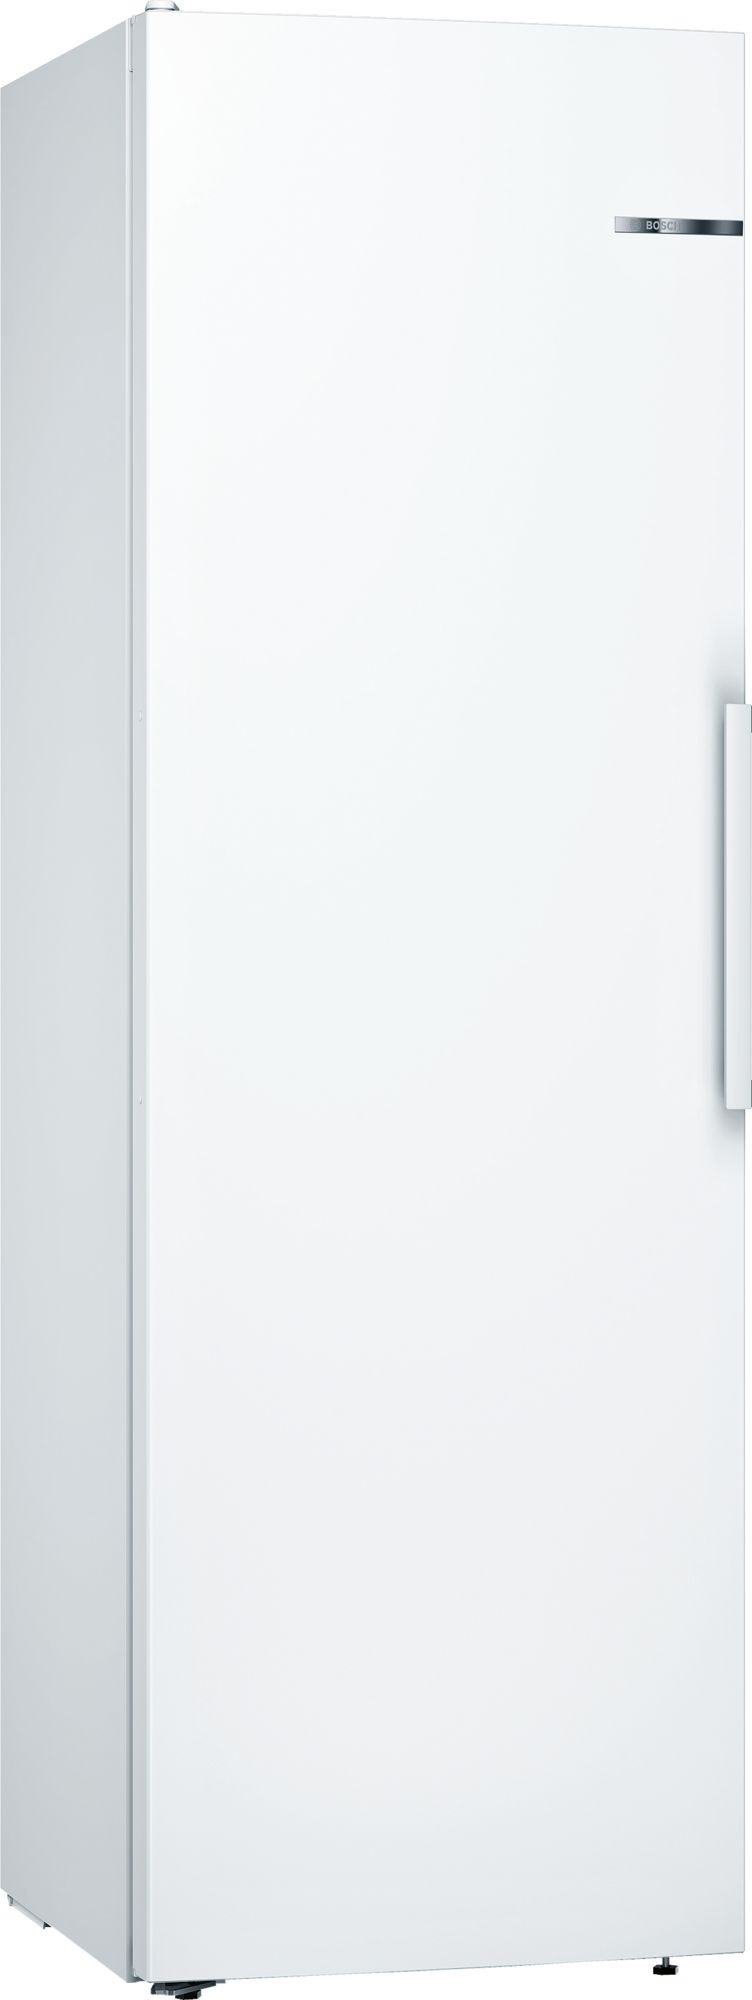 Bosch Serie 2 KSV36NW3PG Freestanding White Upright Fridge